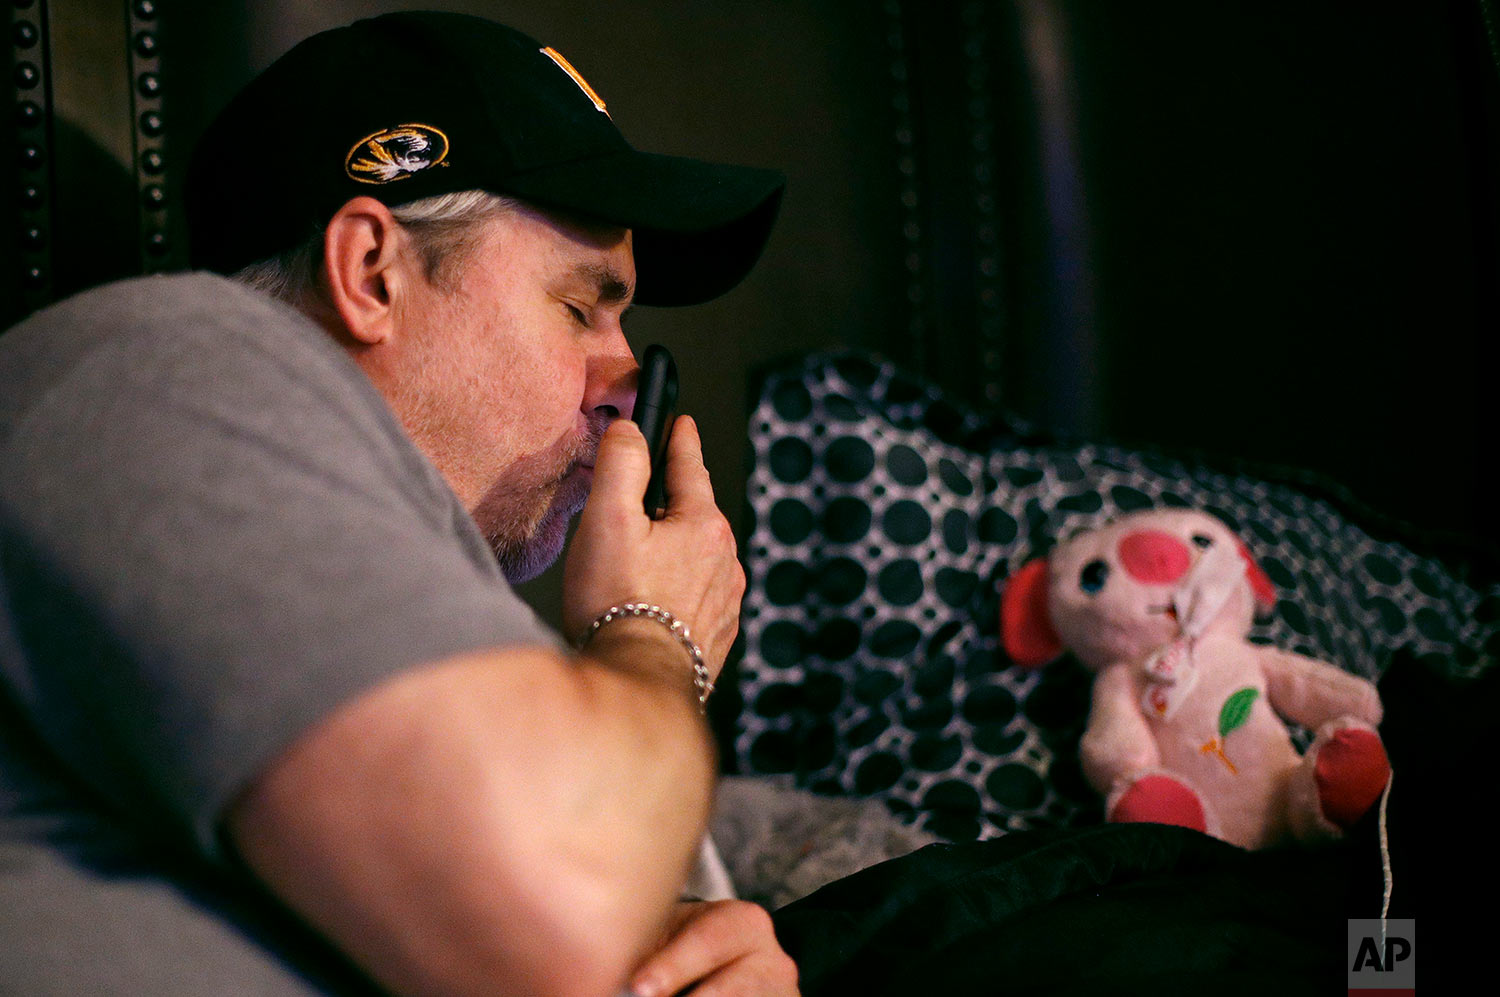 Steve Stegall shares the phone with his stepdaughter, Jennifer, while making a video call with his wife, Letty. (AP Photo/Charlie Riedel)